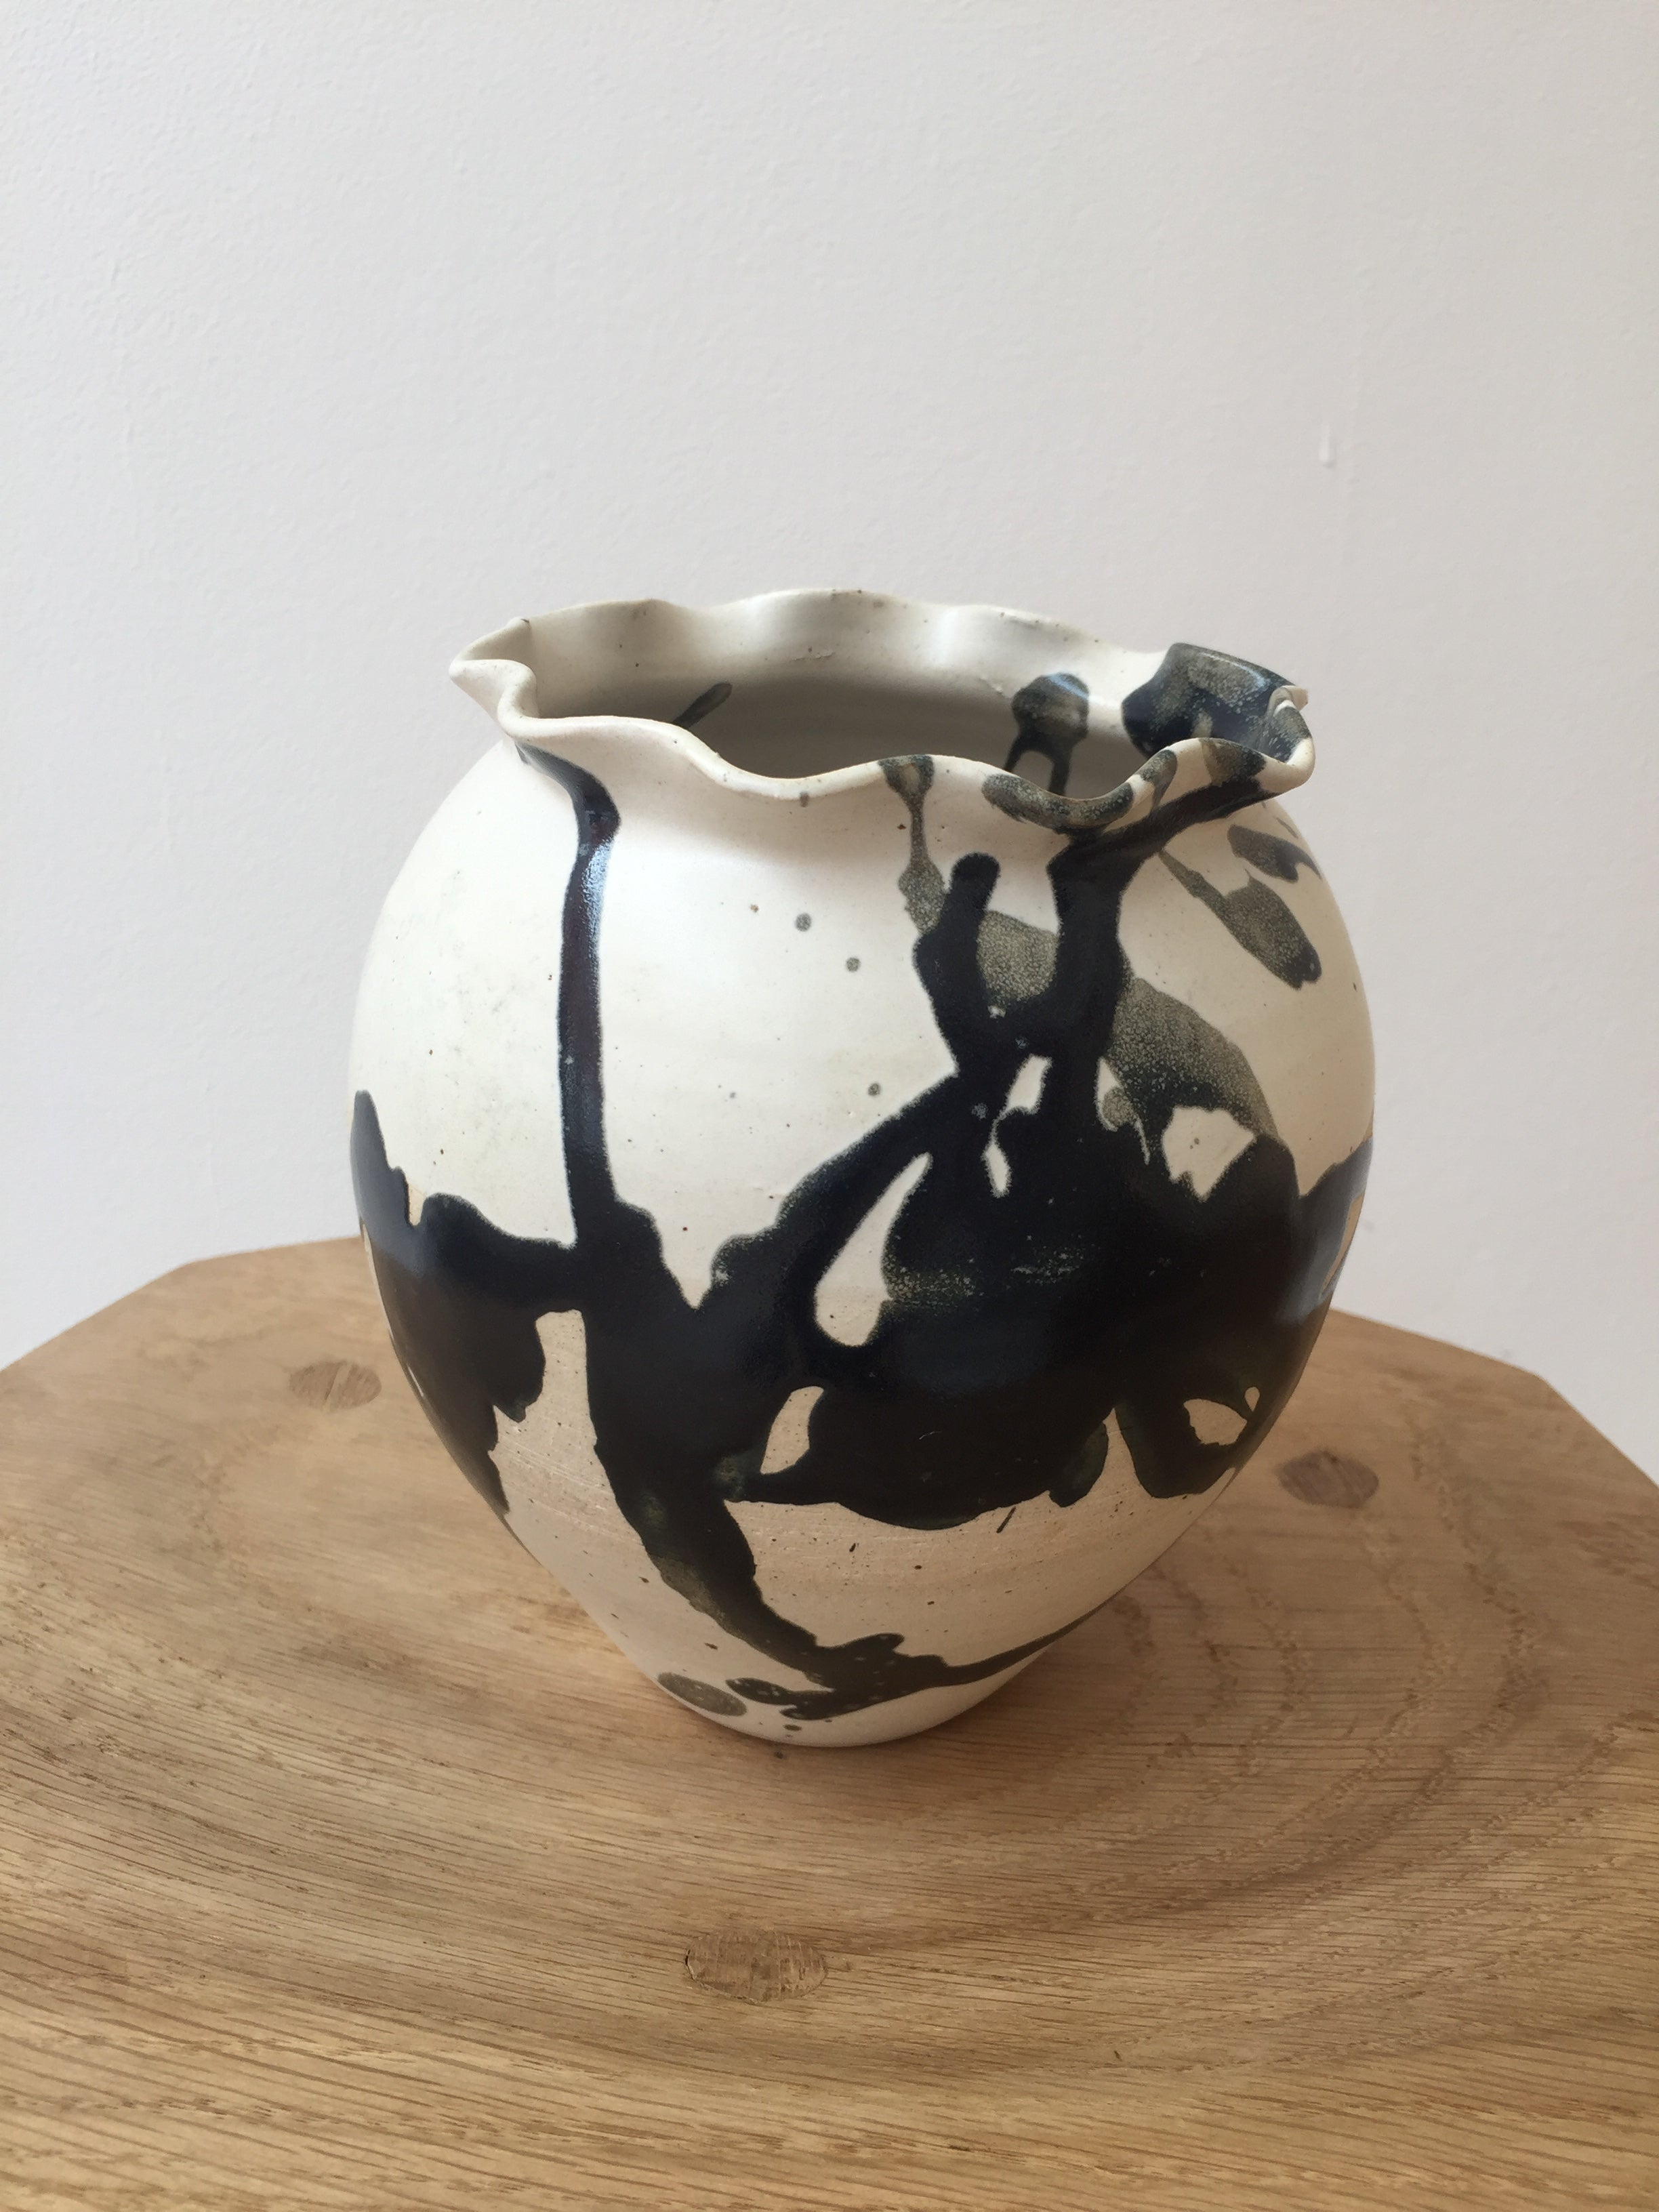 Mud Belly Ceramic Vessel